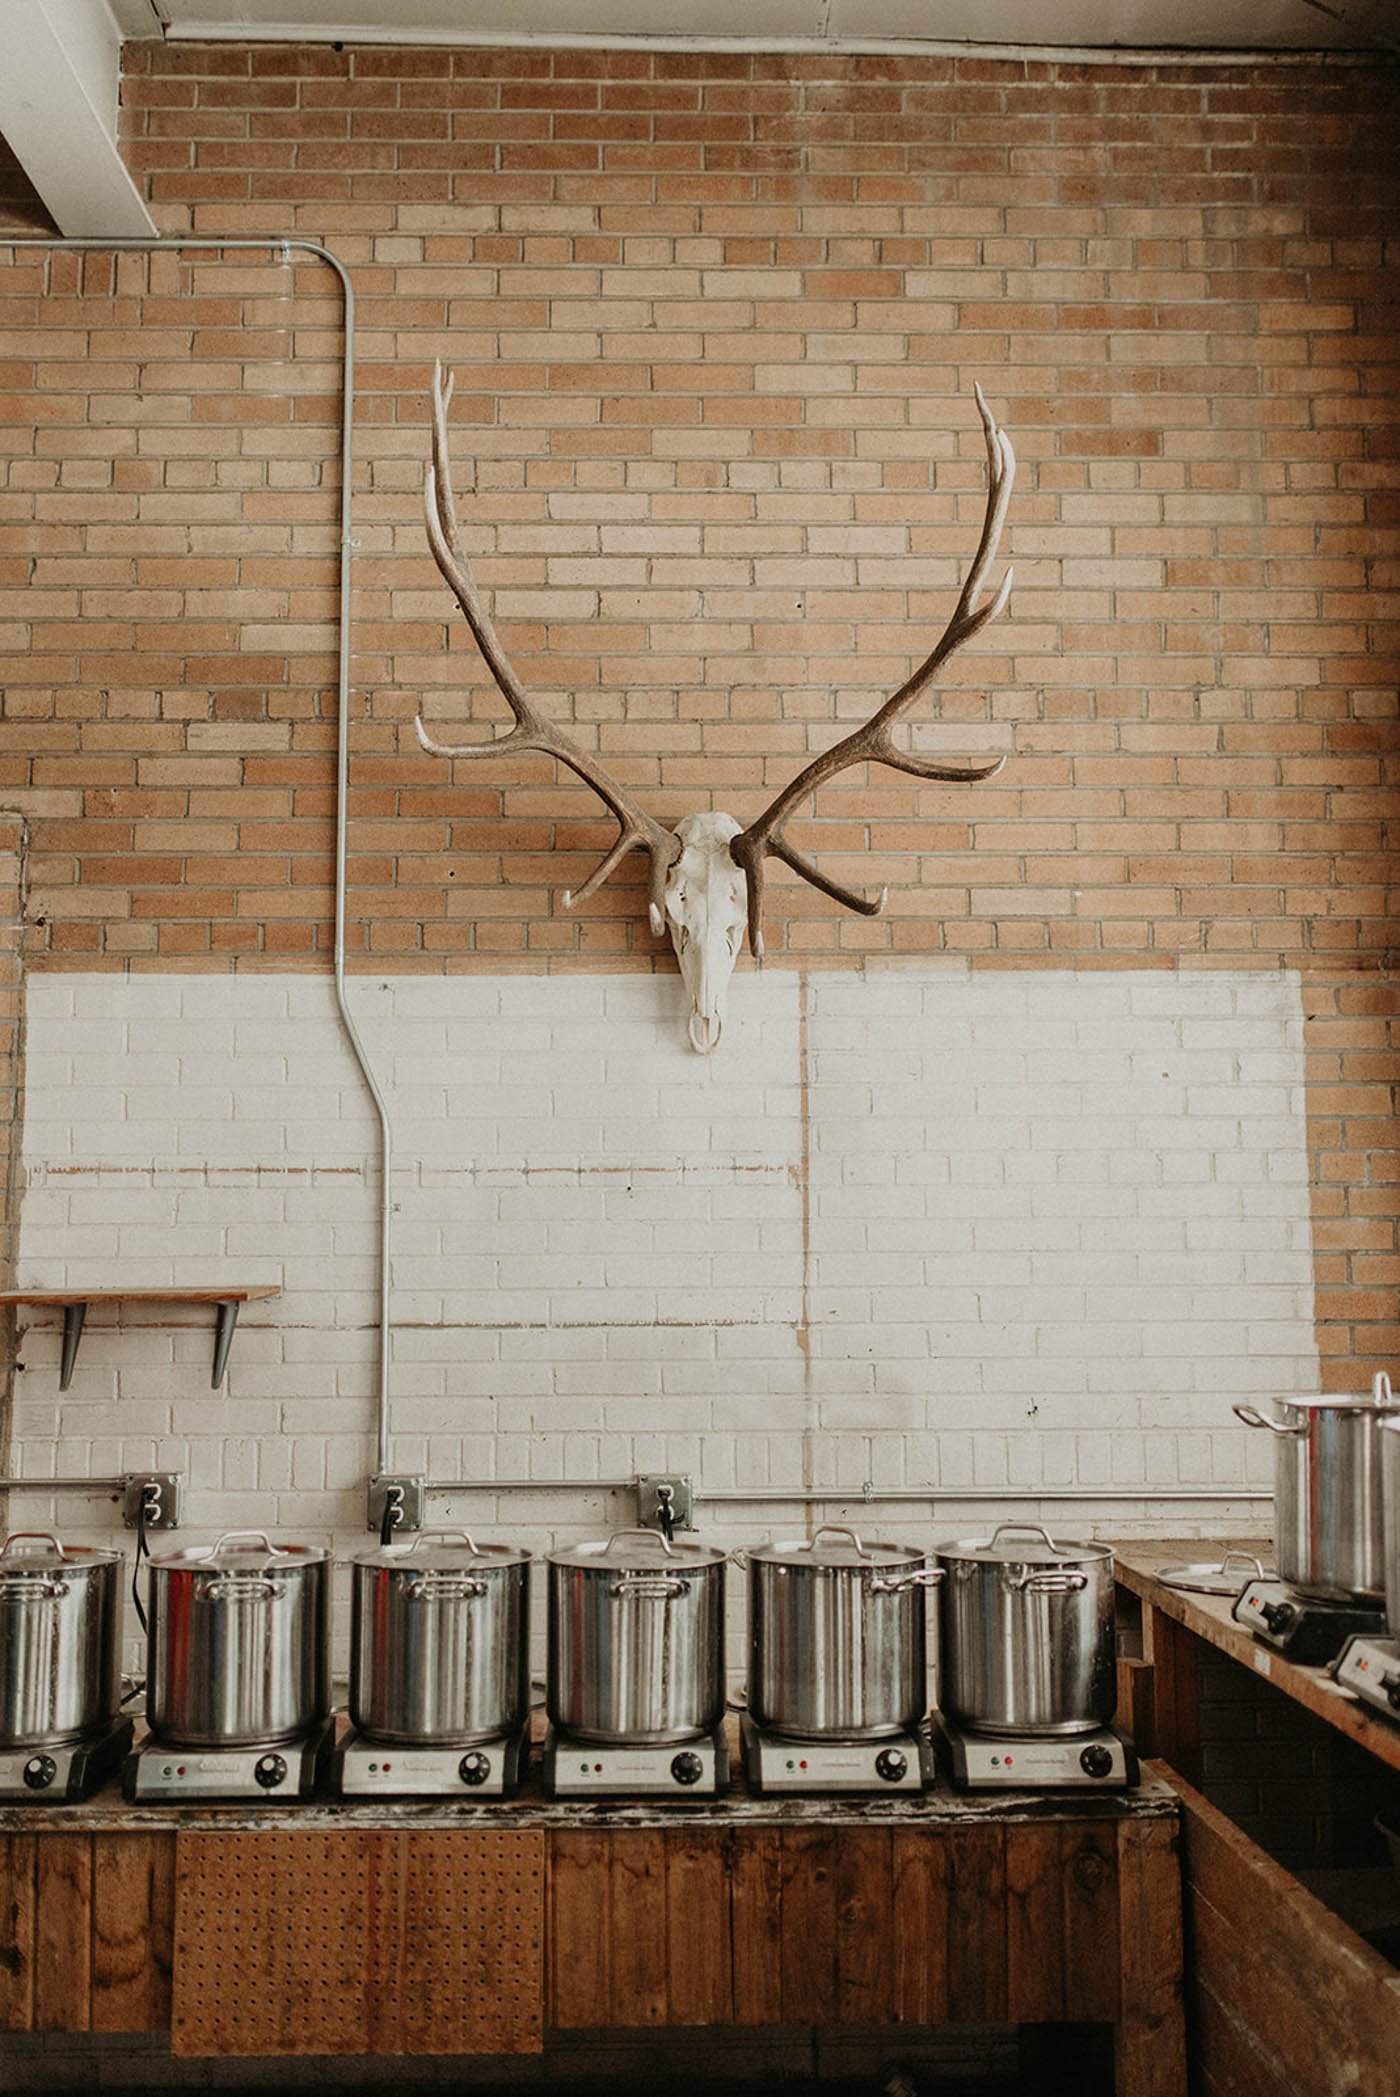 Deer skull on brick wall